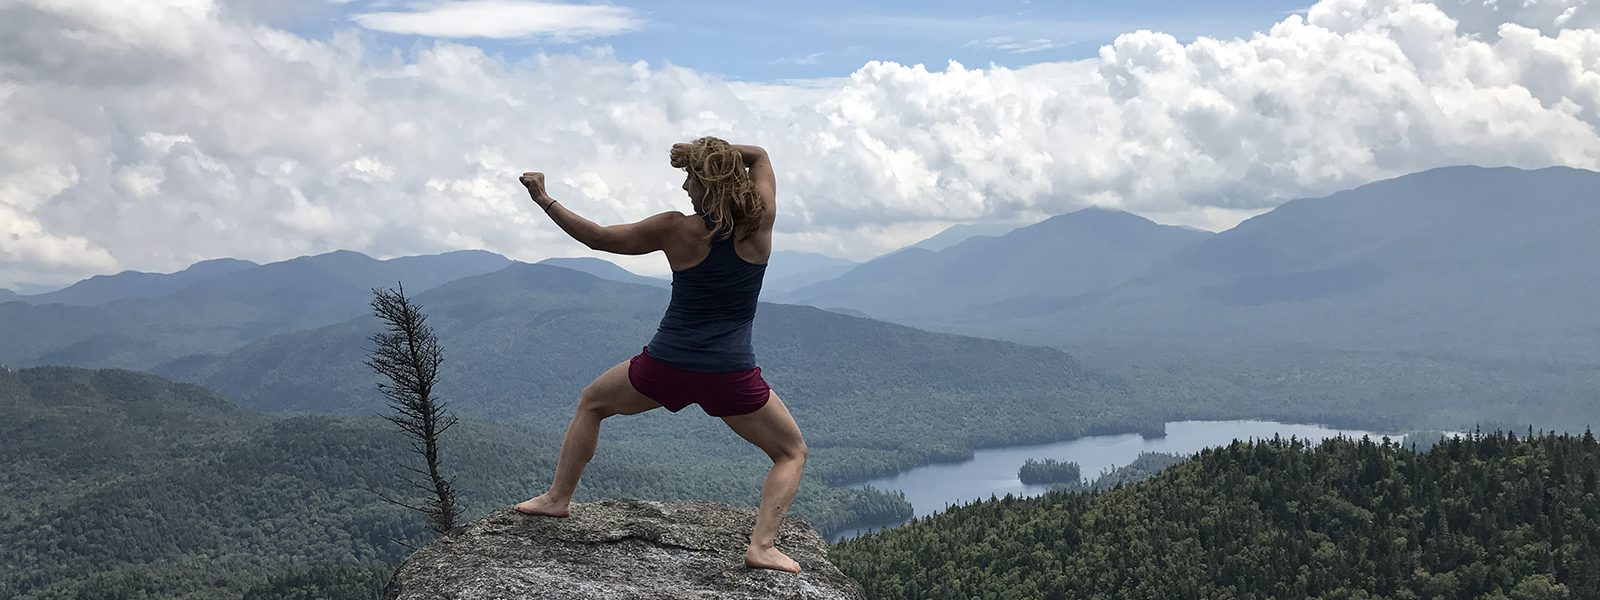 Northland College alum Kayte Meola in warrior pose on mountain top.